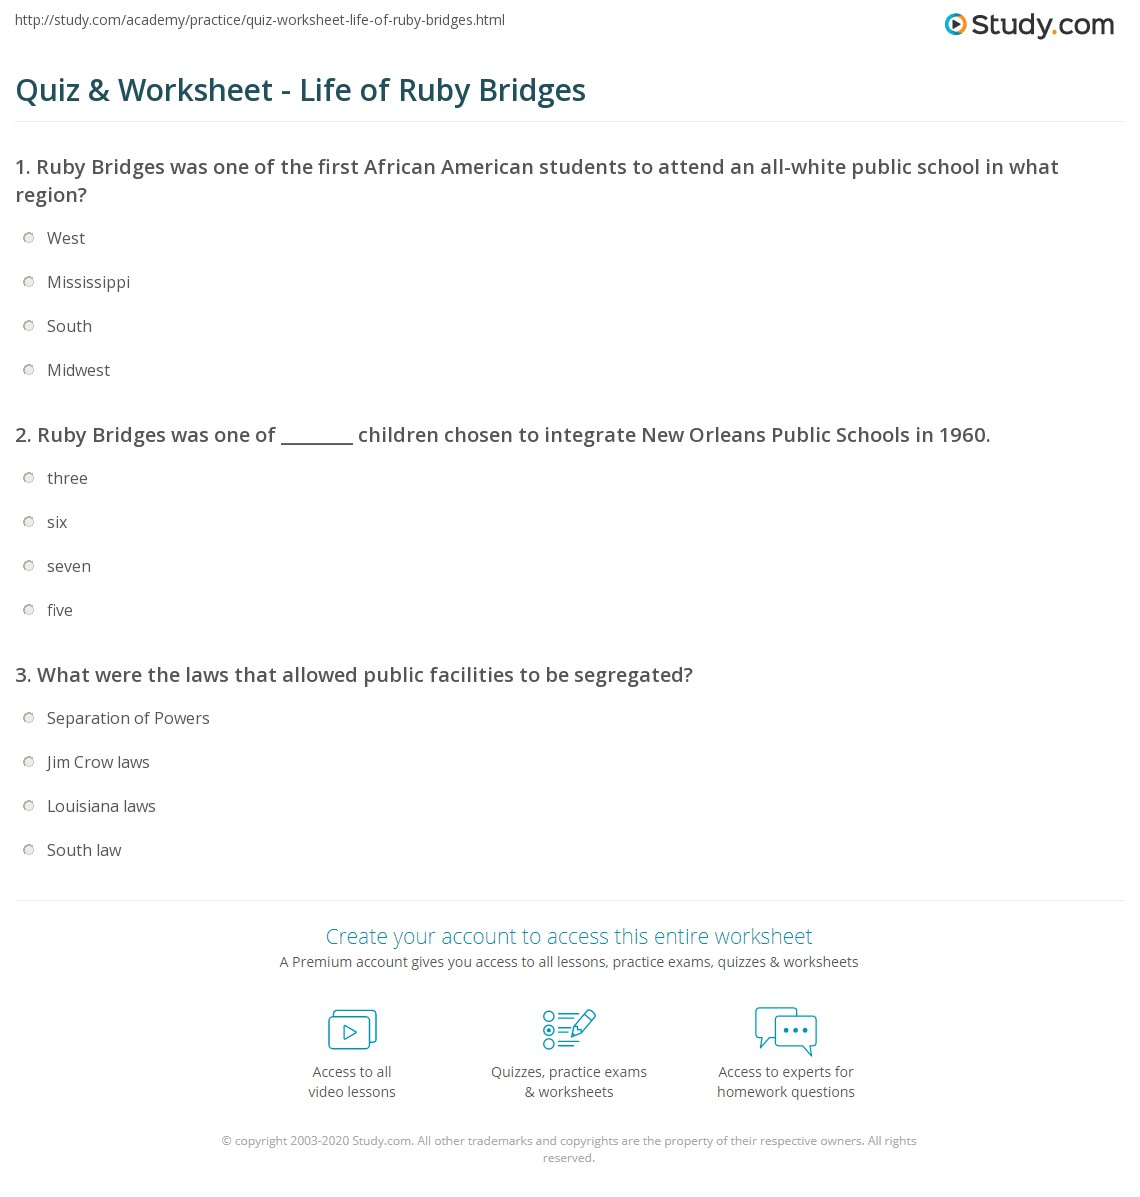 Worksheets Ruby Bridges Worksheets quiz worksheet life of ruby bridges study com print biography facts quotes worksheet